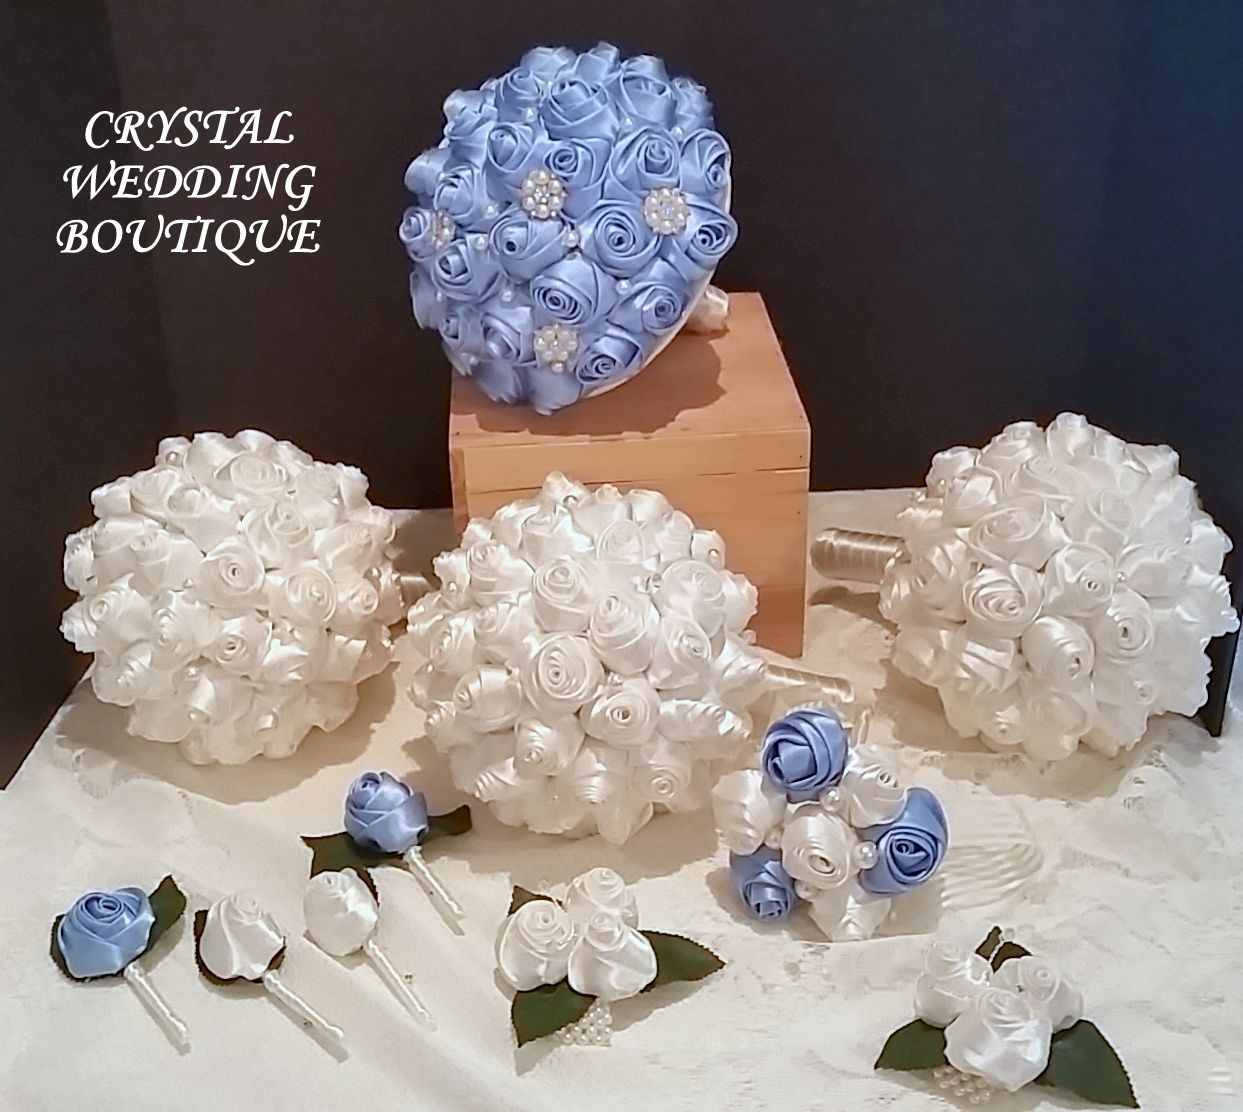 Complete set for the bridal party Mid blue for the bride and ivory for her maids and two tone for the flowergirl